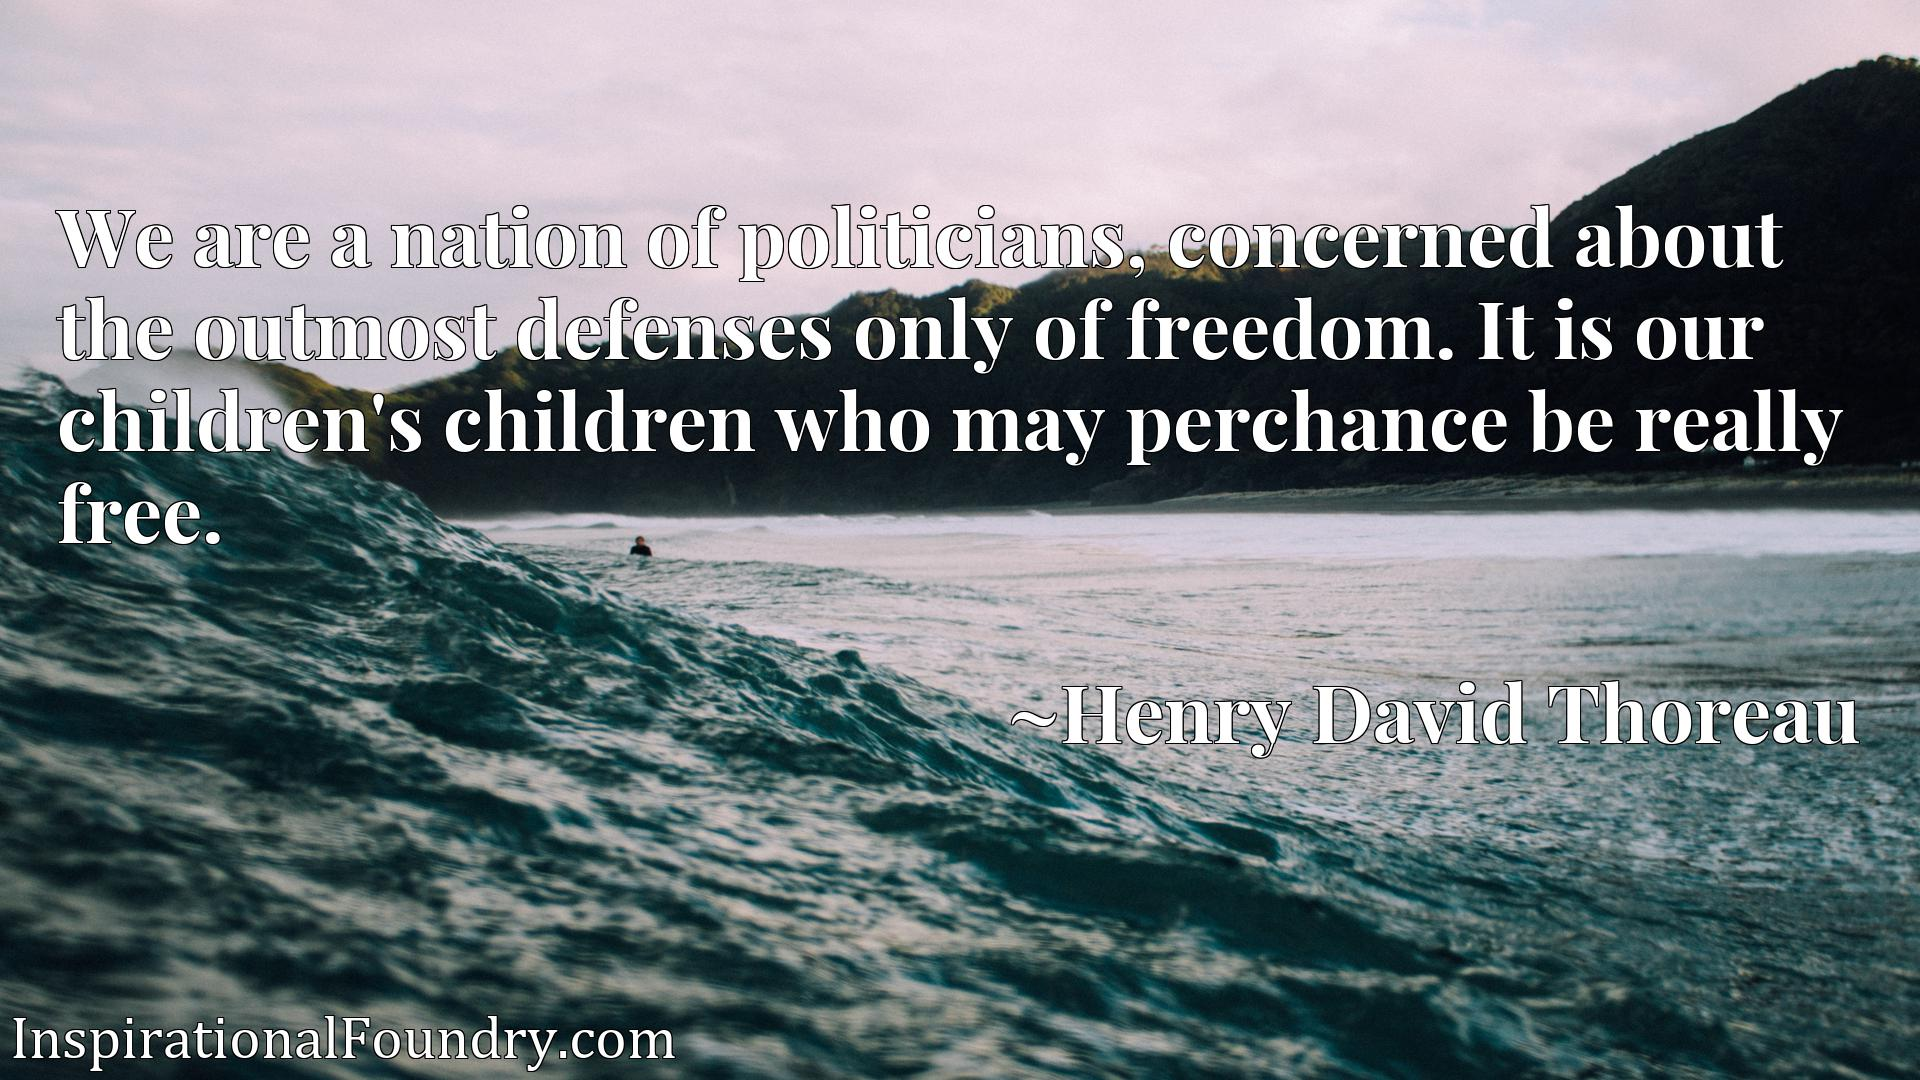 Quote Picture :We are a nation of politicians, concerned about the outmost defenses only of freedom. It is our children's children who may perchance be really free.